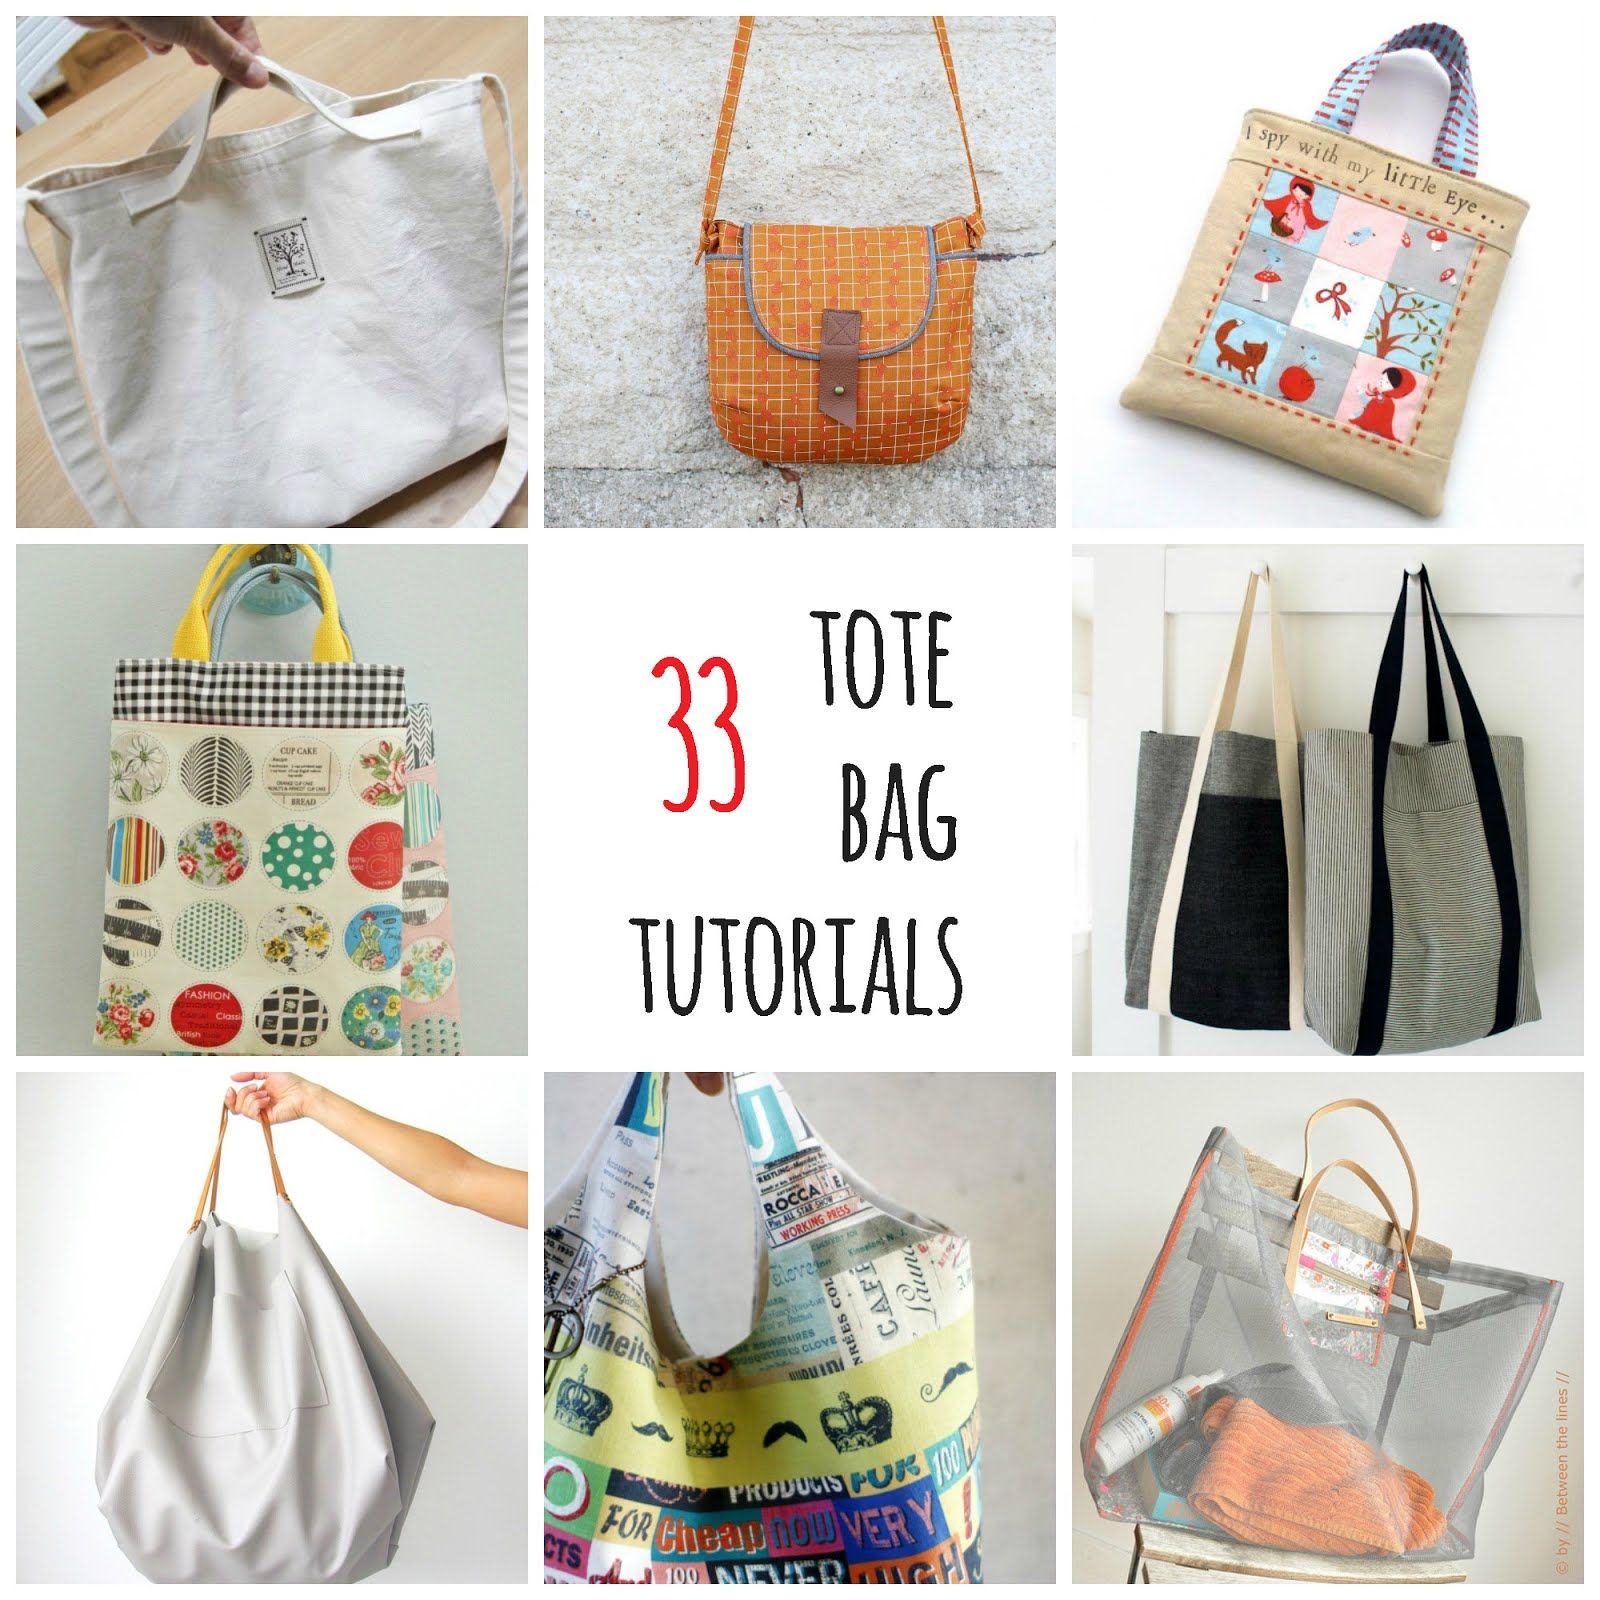 Number 33 free picture of the number thirty three - S O T A K Handmade Thirty Three Tote Bag Tutorials 33 Patrones De Bolsos